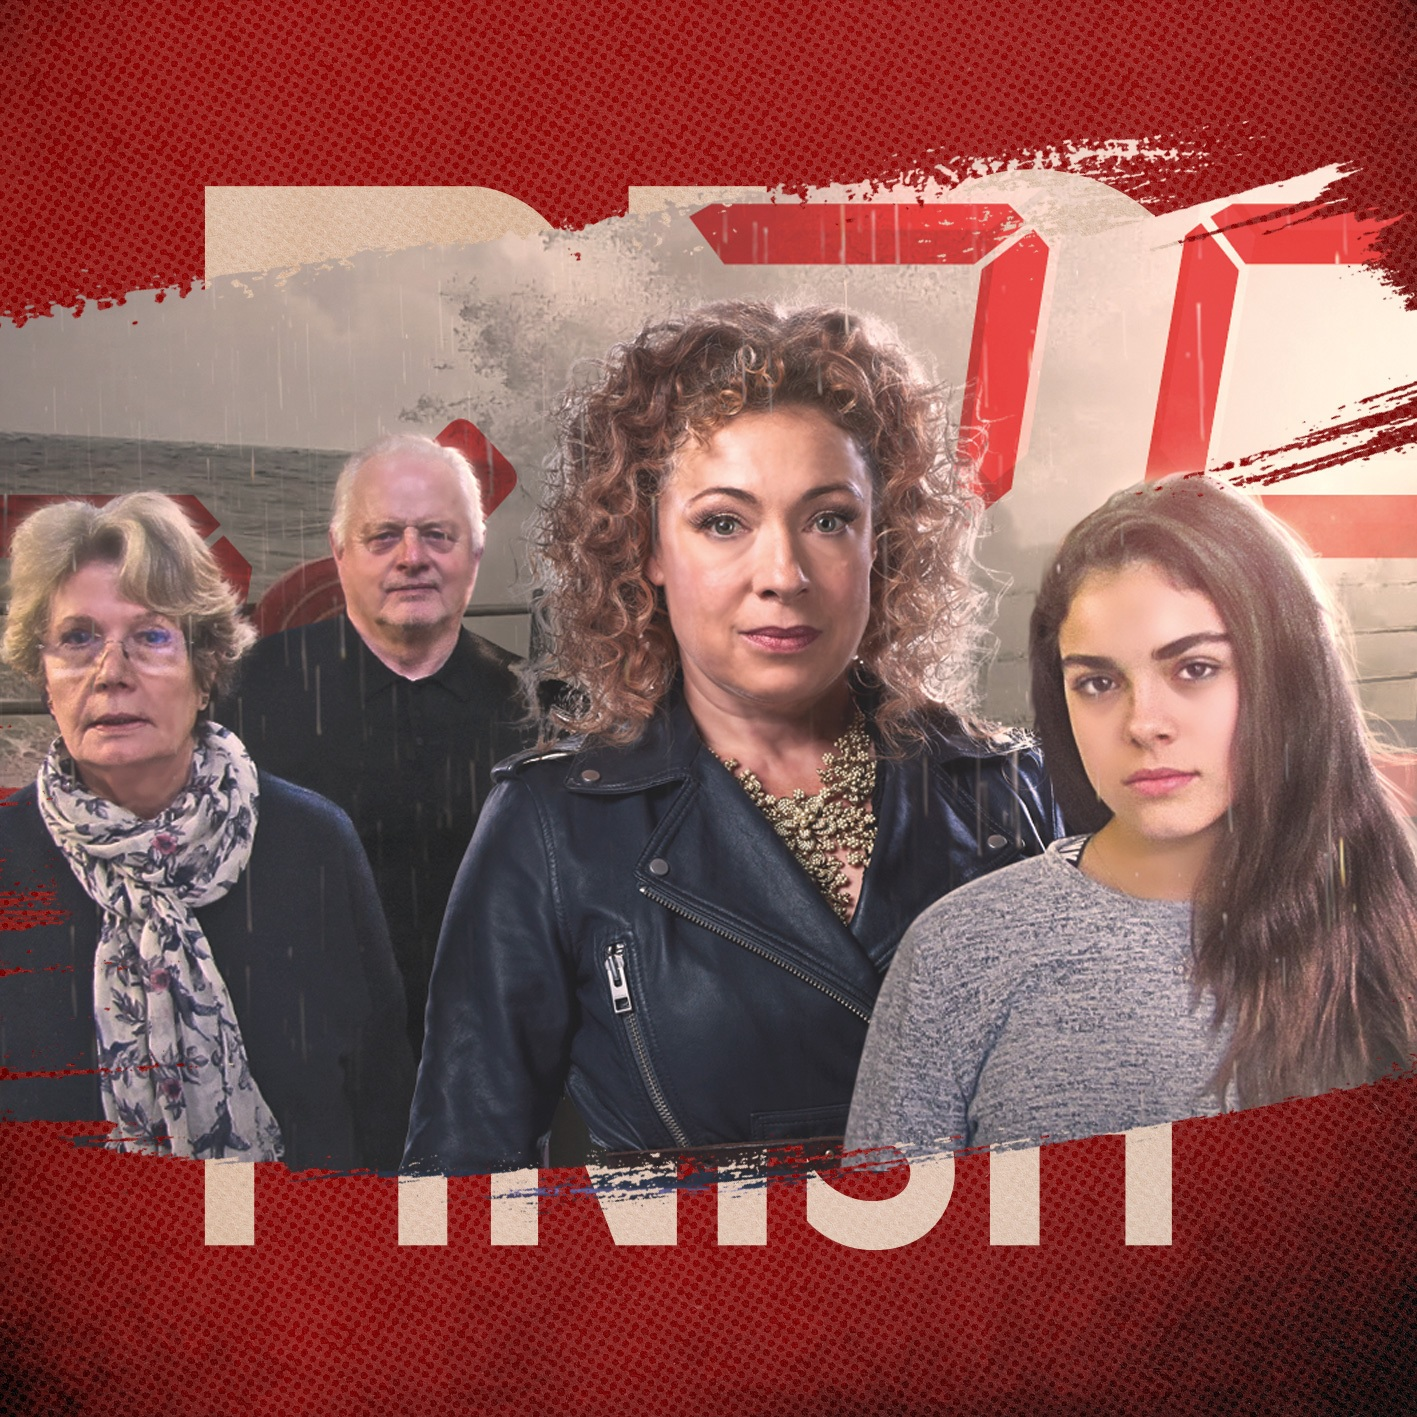 Download The Diary of River Song: Five Twenty-Nine, Starring Alex Kingston and Daughter, FREE!